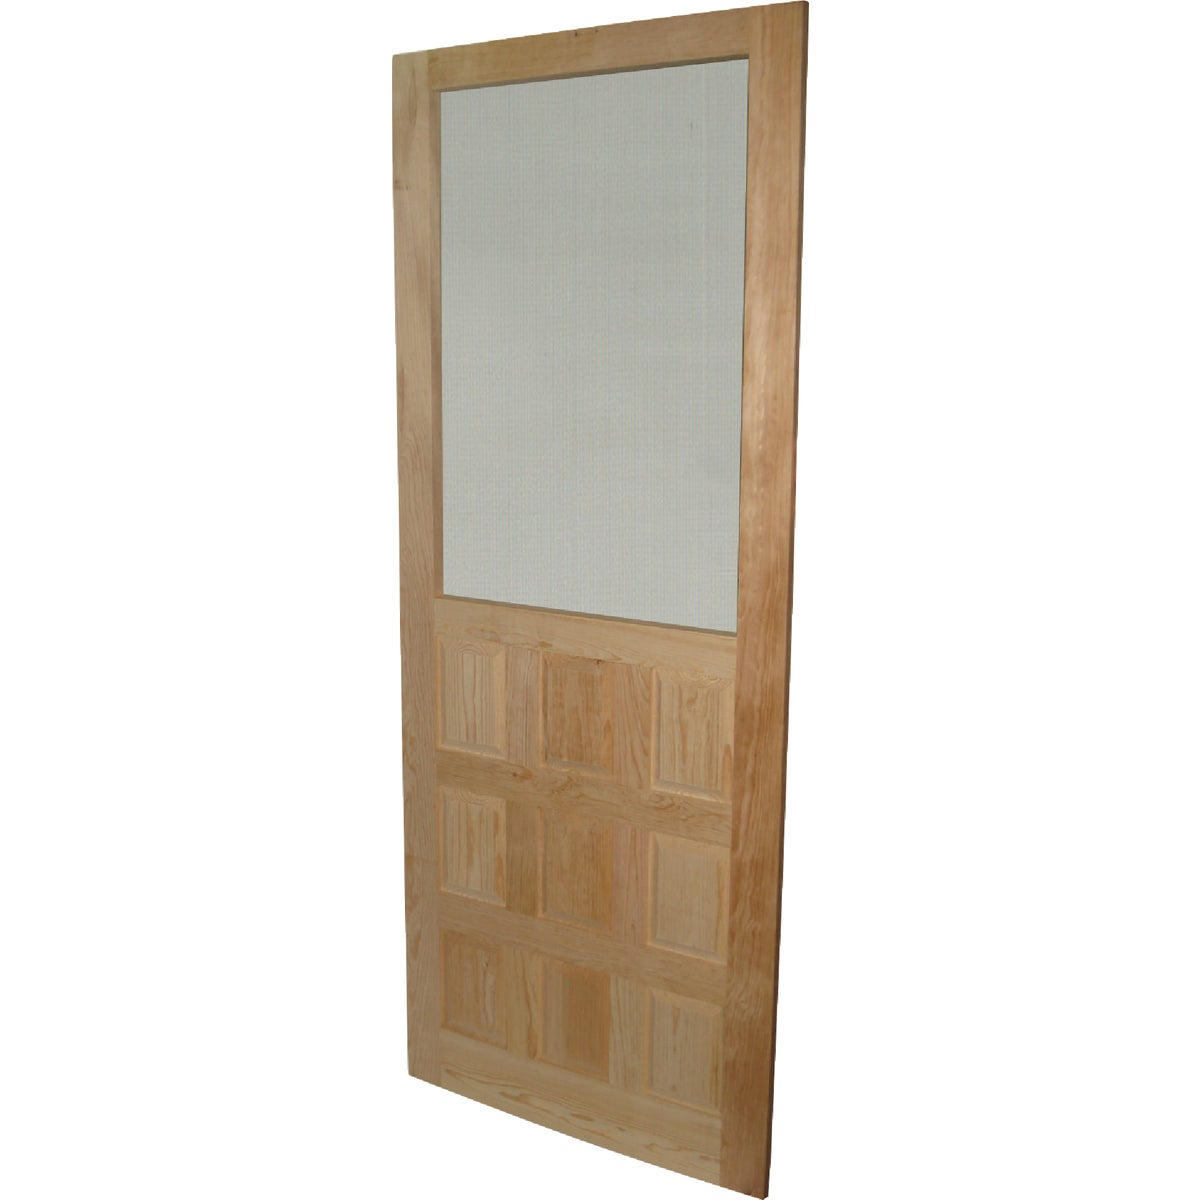 "32"" RP SCREEN DOOR - 2868RP by Wood Prod Manufactur"